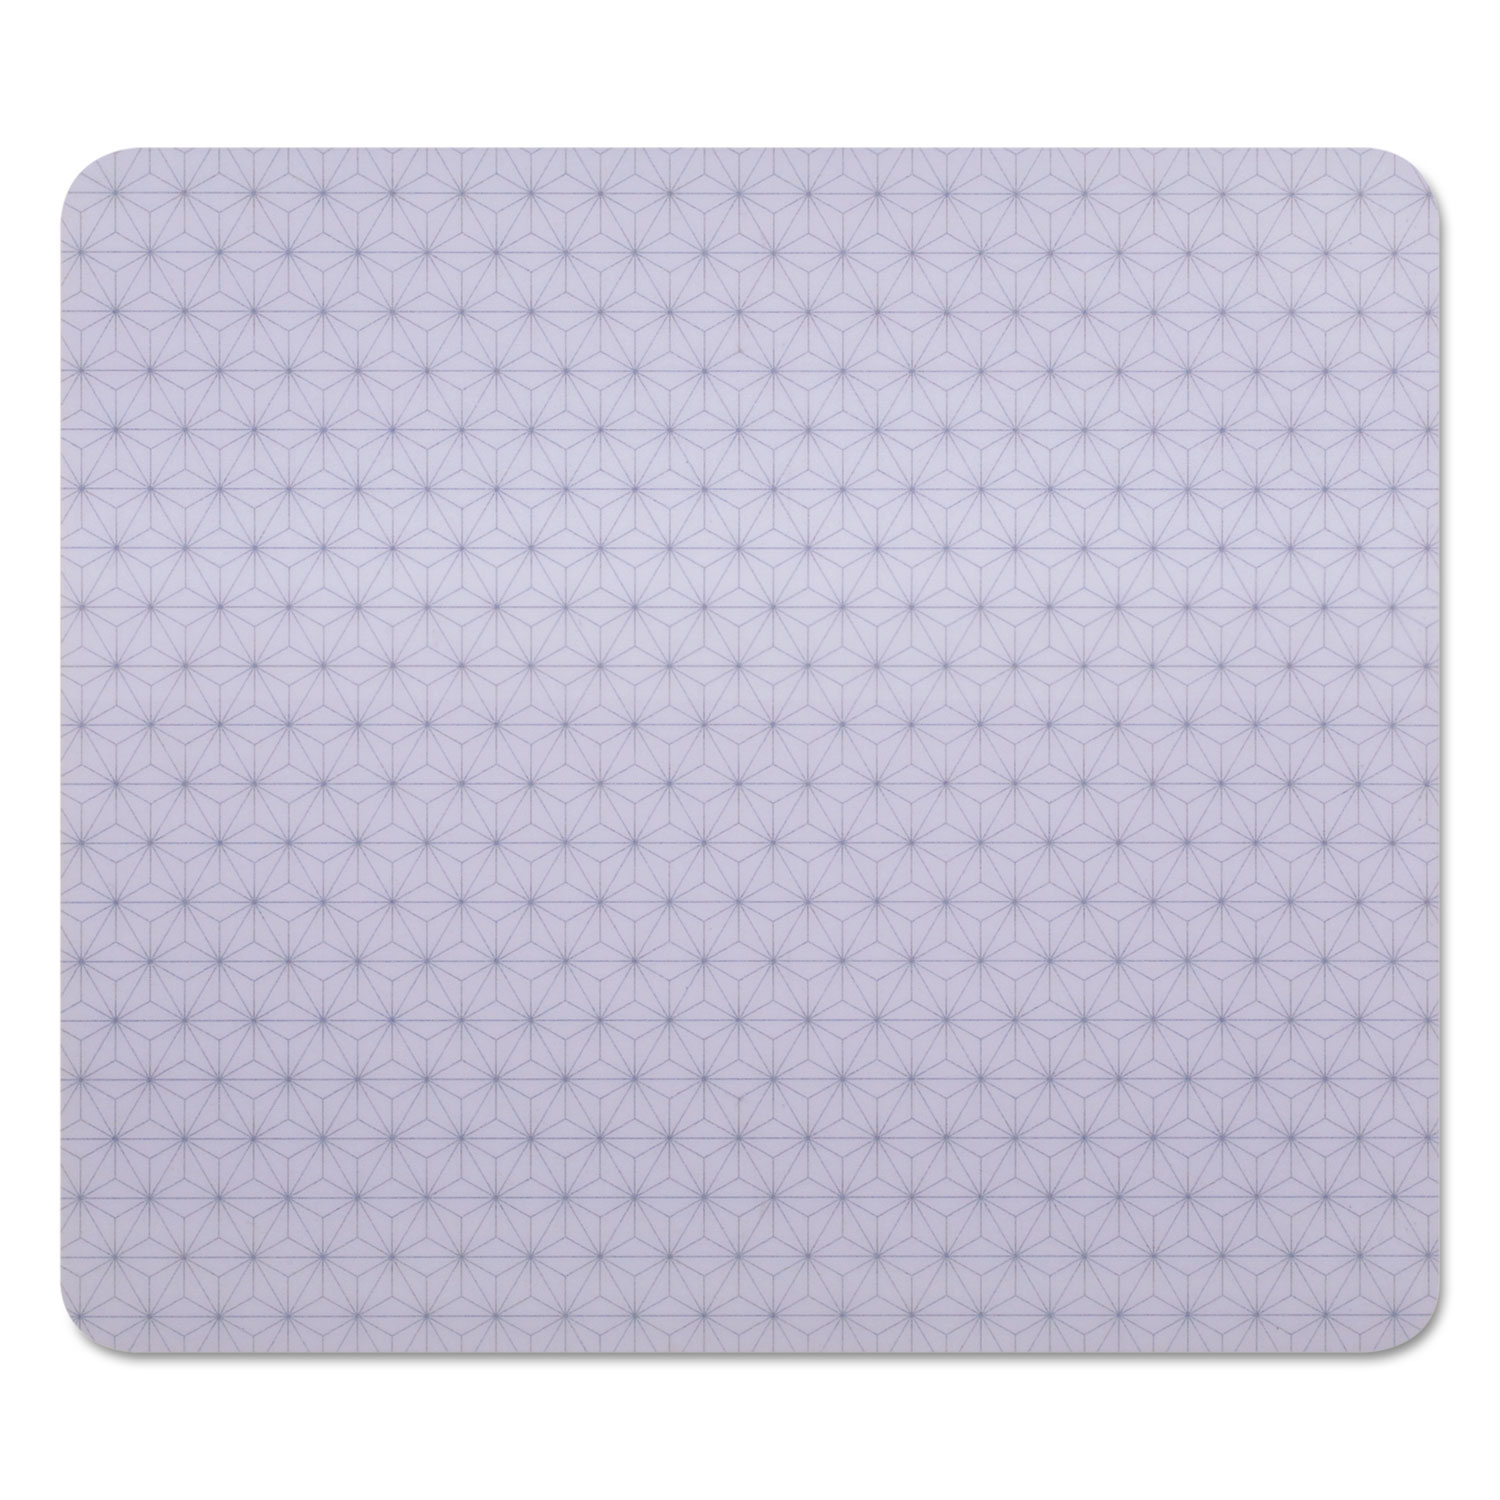 "3M Precise Mouse Pad, Nonskid Back, 9"" x 8, Gray/Frostbyte"